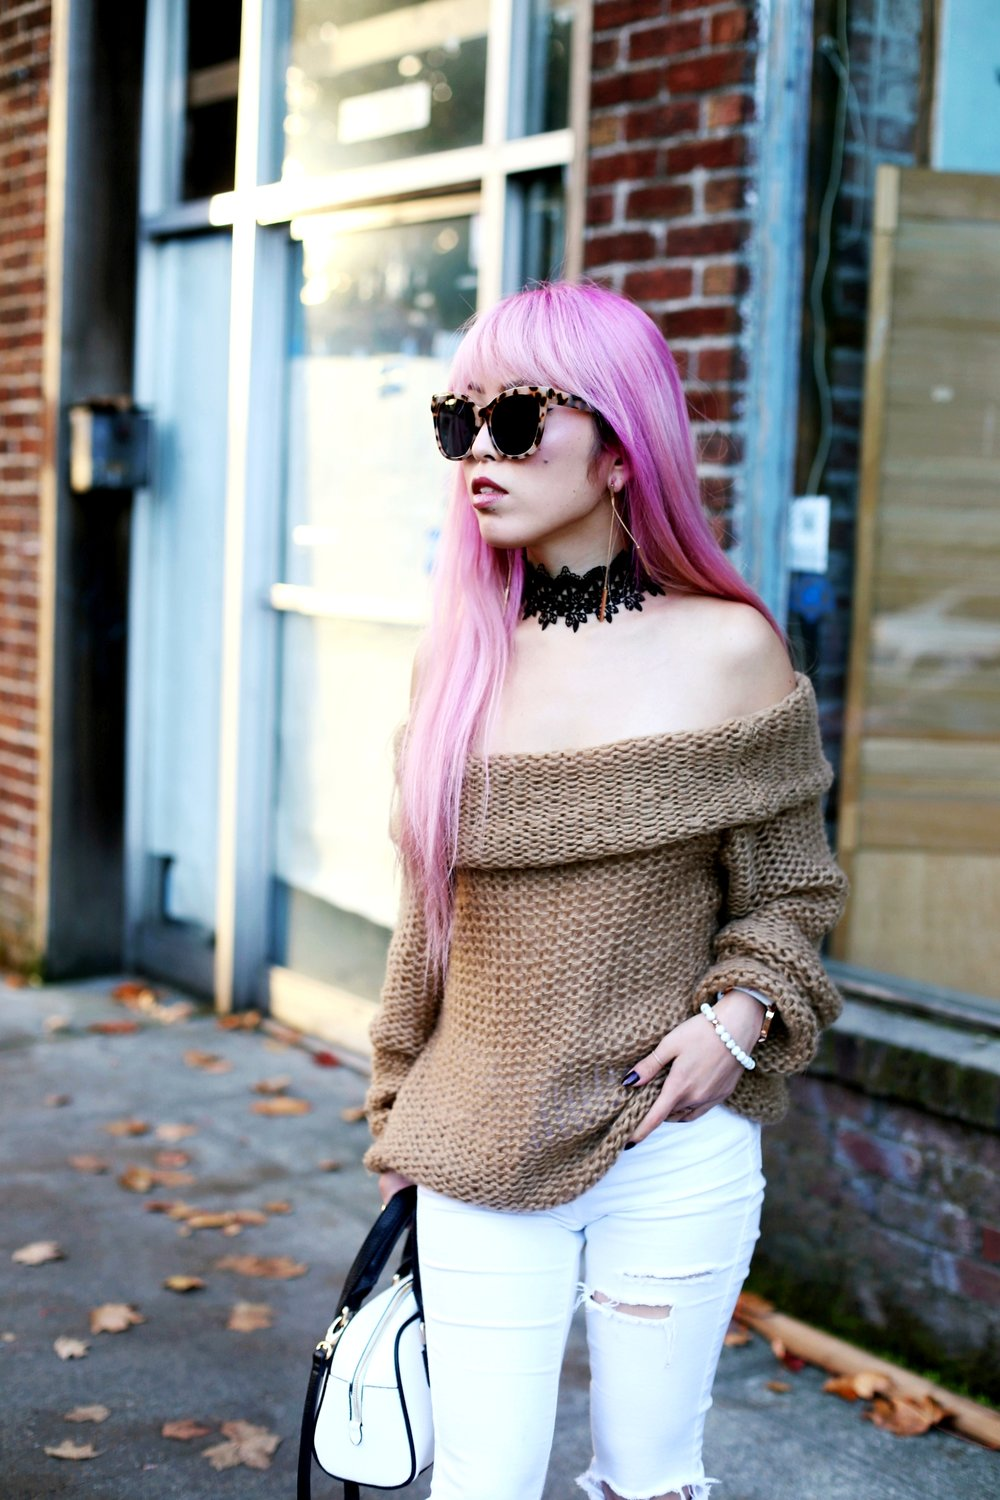 Urban Outfitters Sunglasses_Camel Off The Shoulder Sweater_TOPSHOP white jeans_ZARA Bag_ASOS Snake Skin Heels_Shop Dixi Lace Choker_Aika's Love Closet_Seattle Fashion Blogger_Japanese_Pink Hair_Colored Hair 7